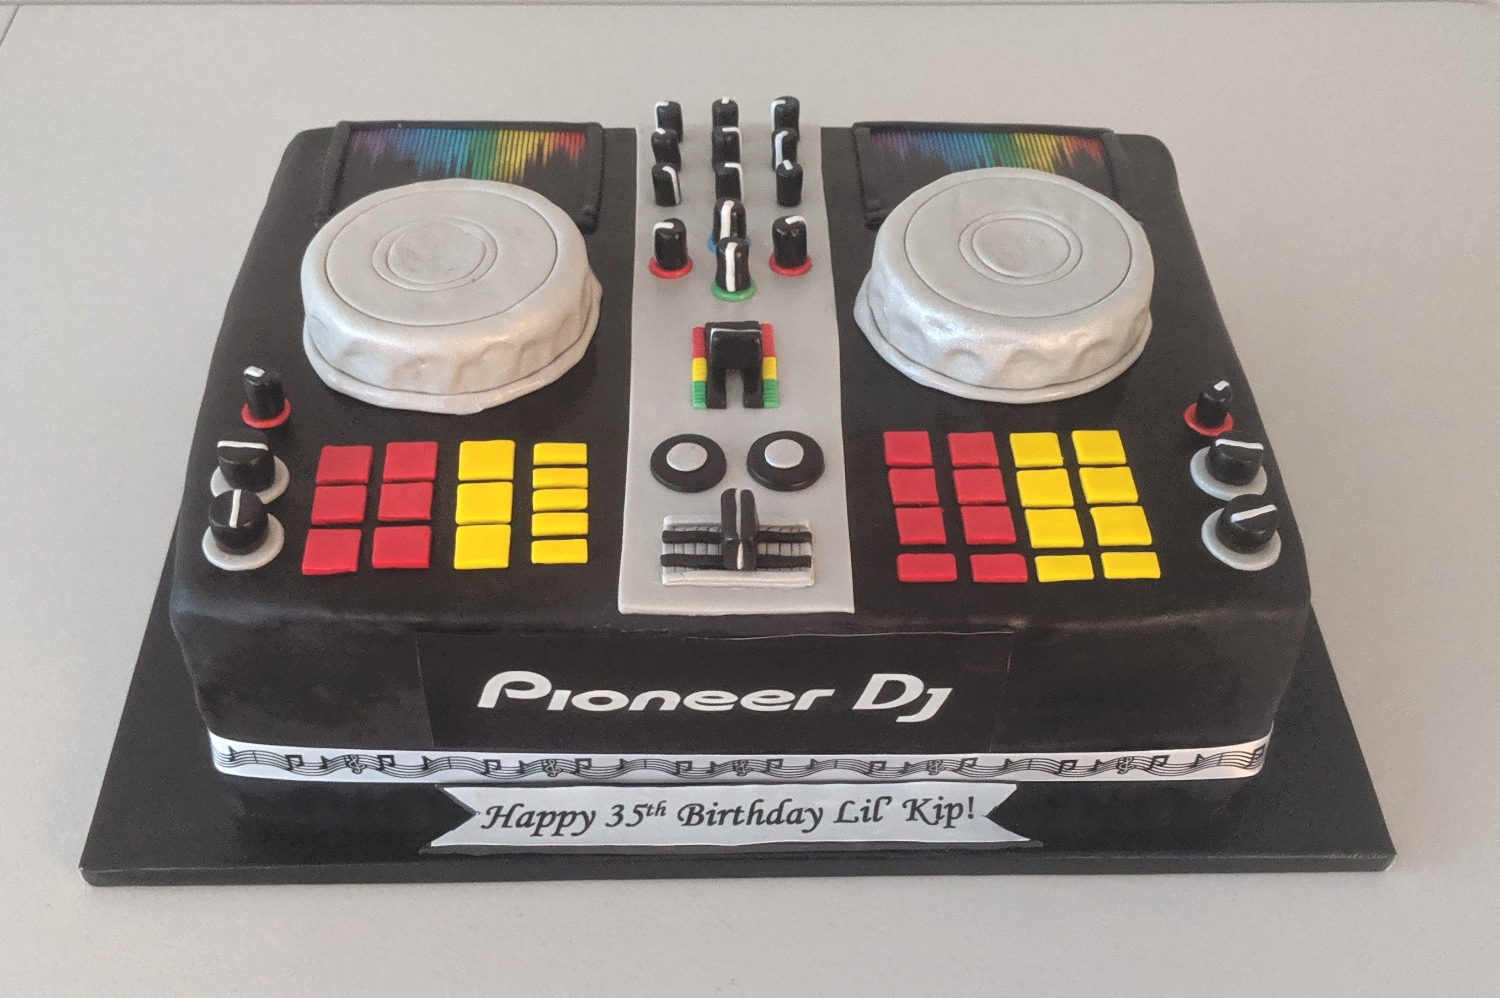 DJ Turntable Birthday Cake